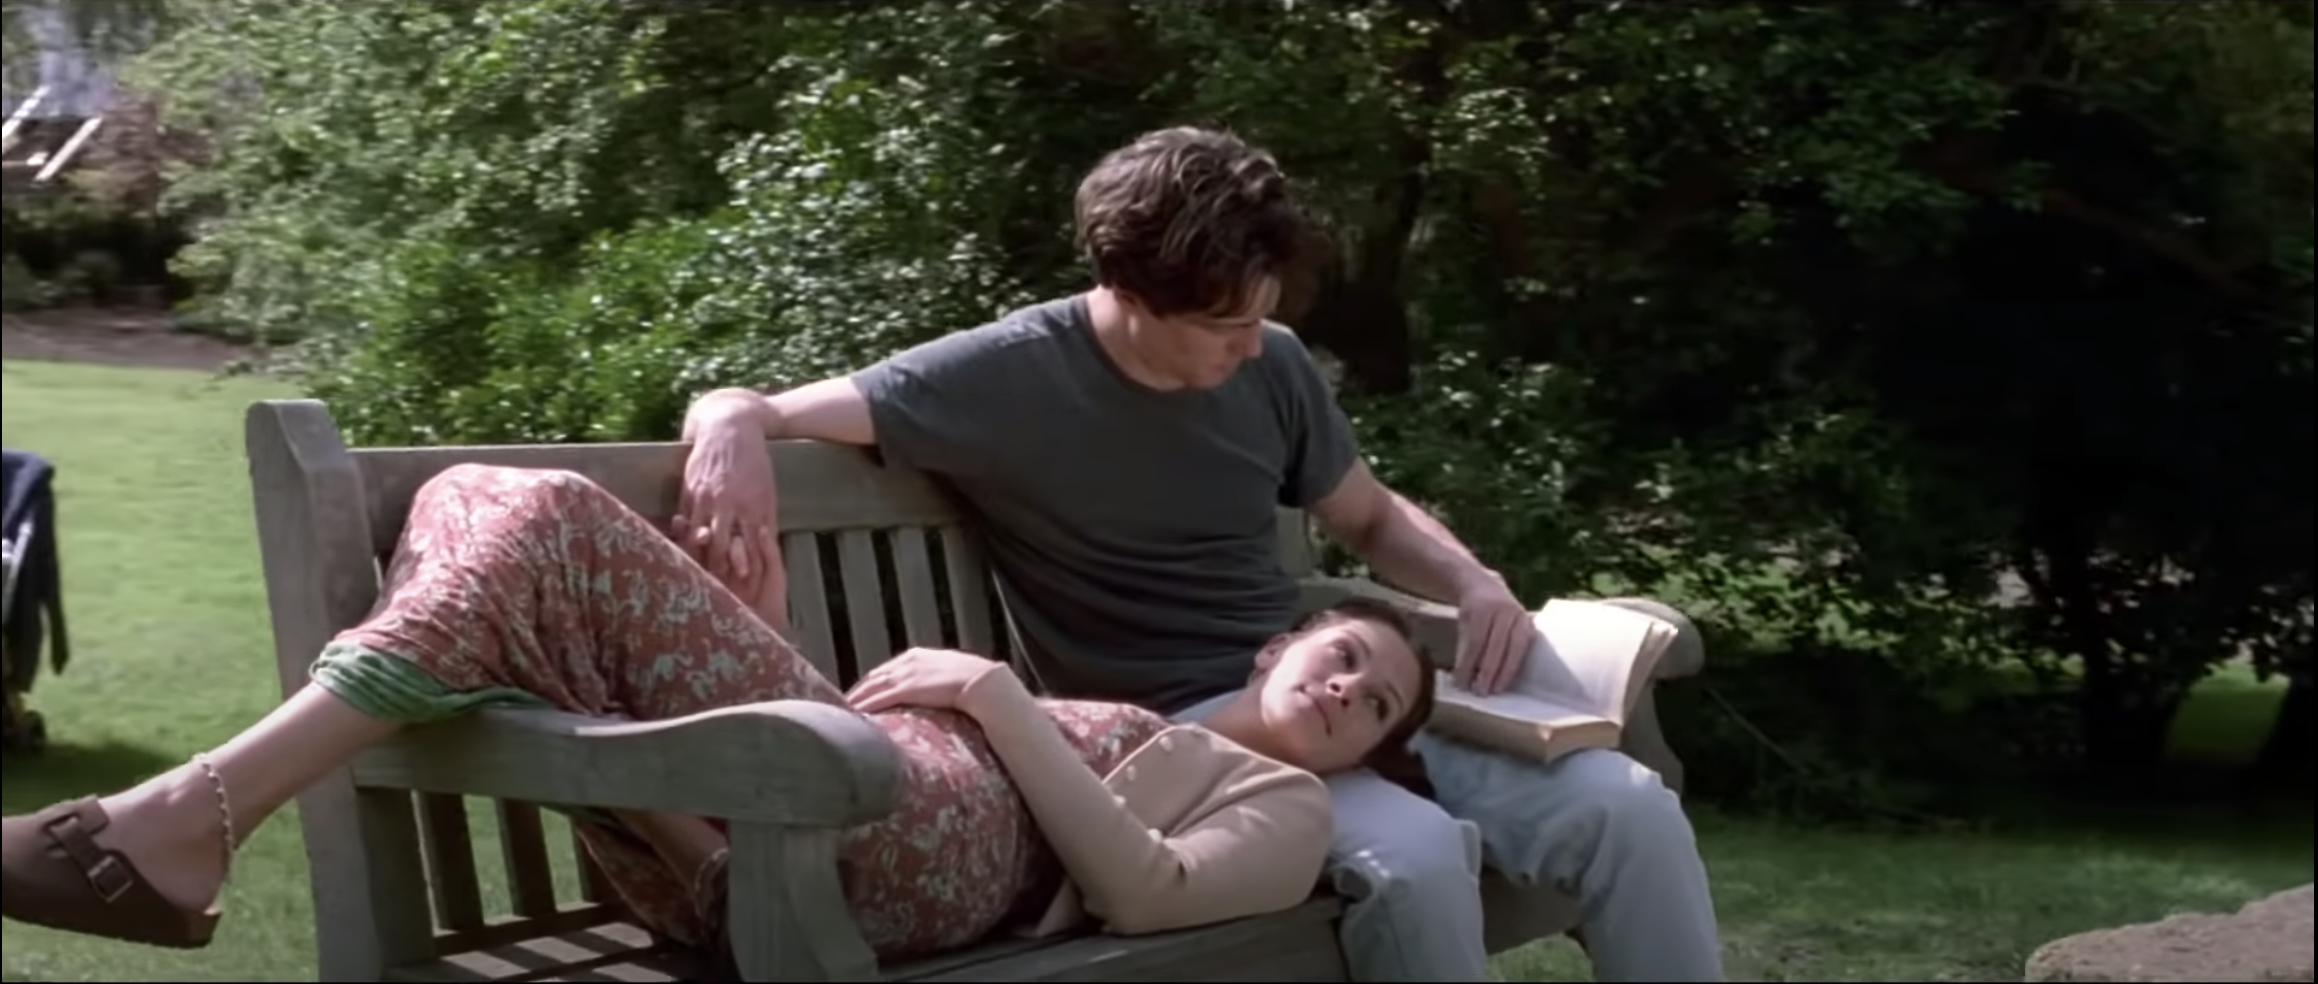 Hugh as Will Thacker sitting on a bench reading to Julia Roberts as Anna Scotts in Notting Hill